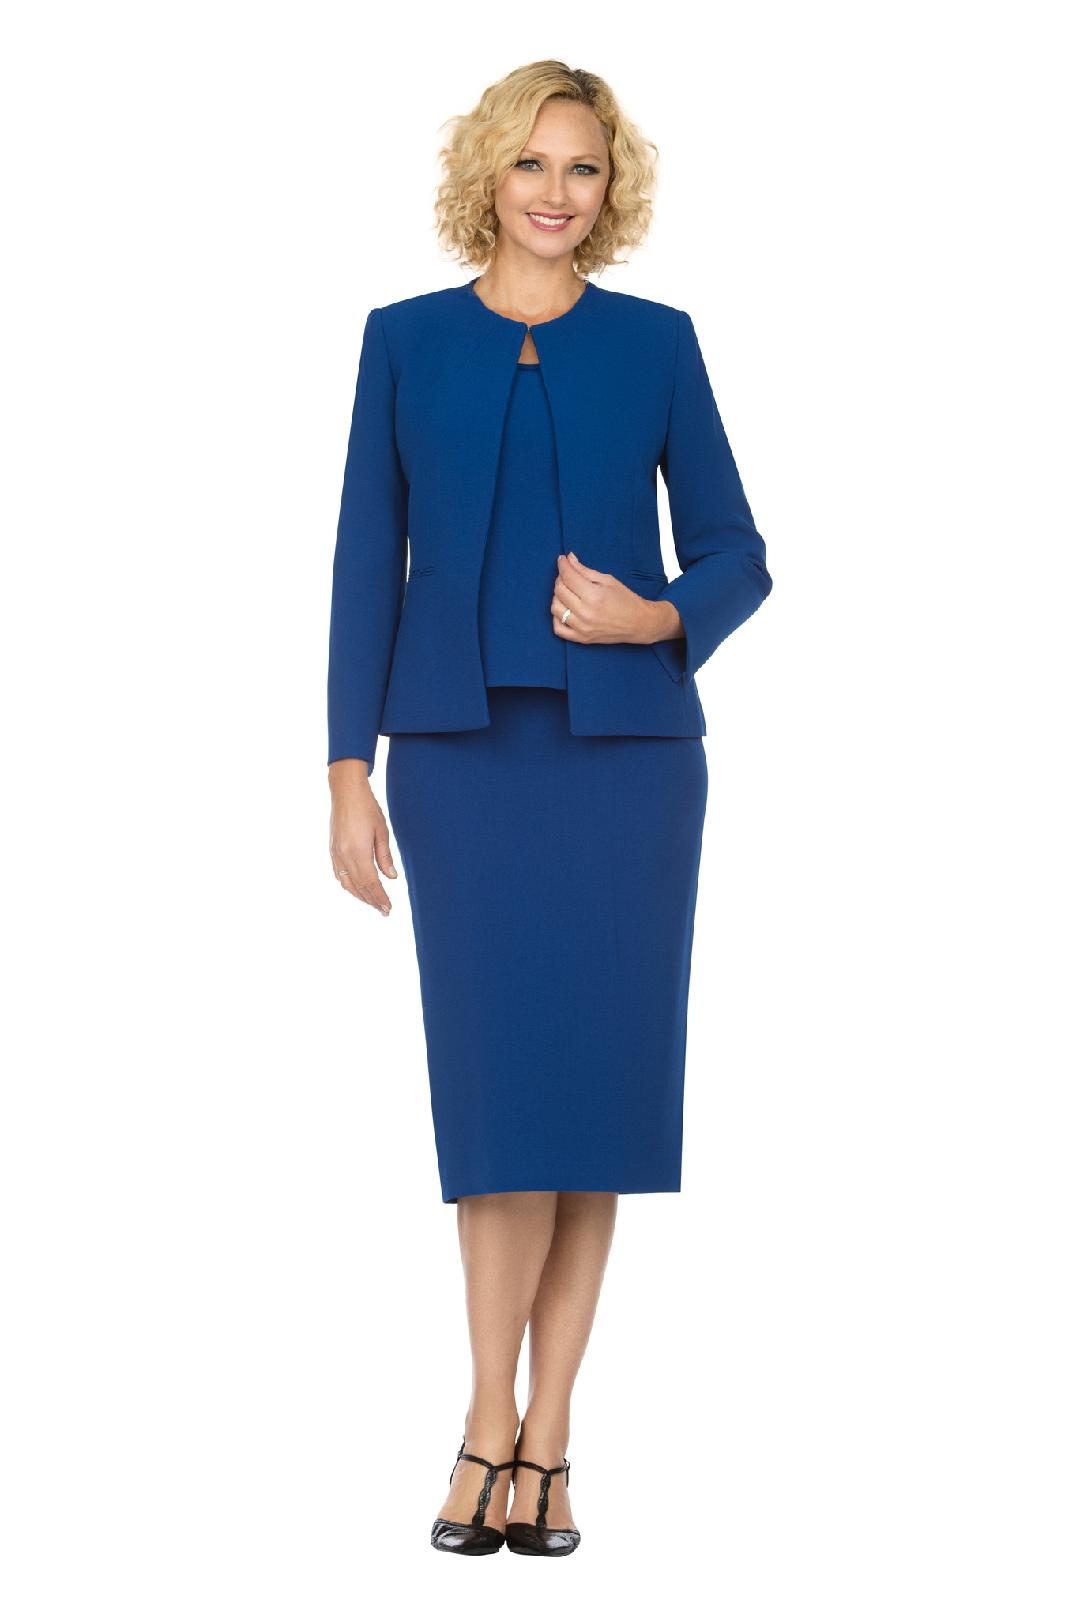 Giovanna Usher Suit S0721-Royal - Church Suits For Less